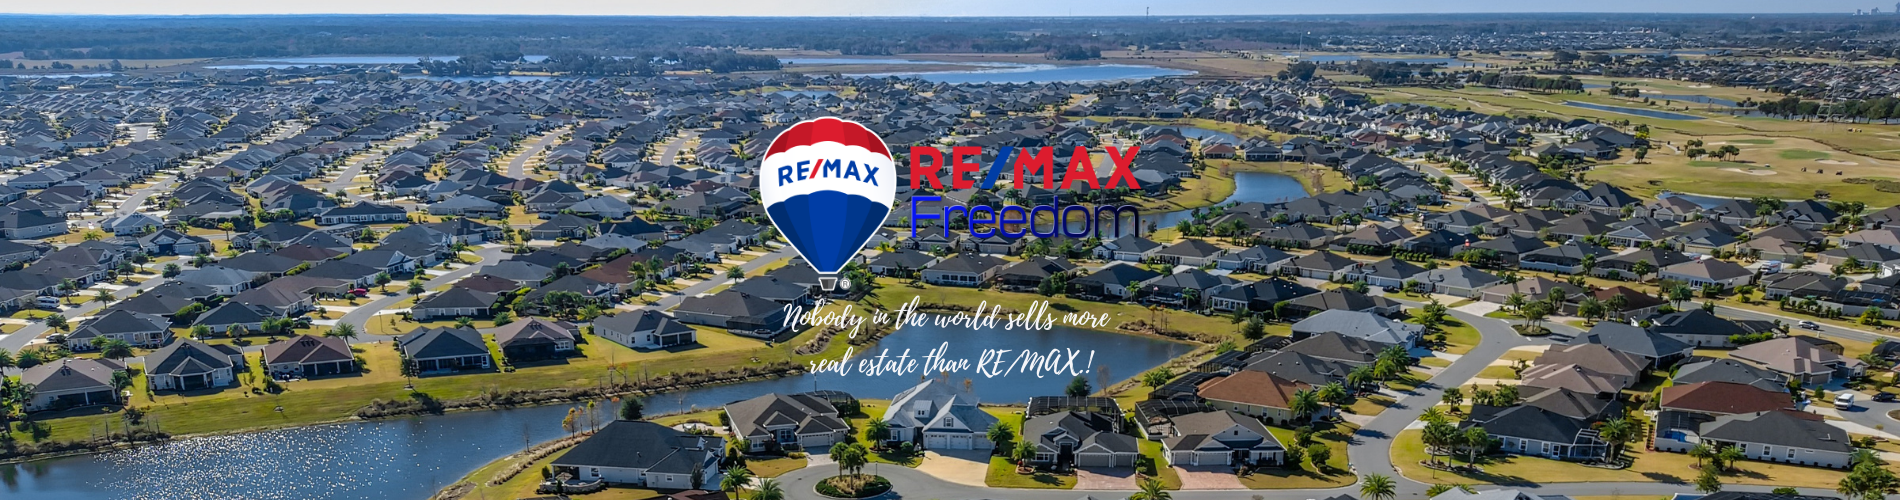 Homes & Houses for Sale in The Villages, FL - Real Estate | RE/MAX in The Villages